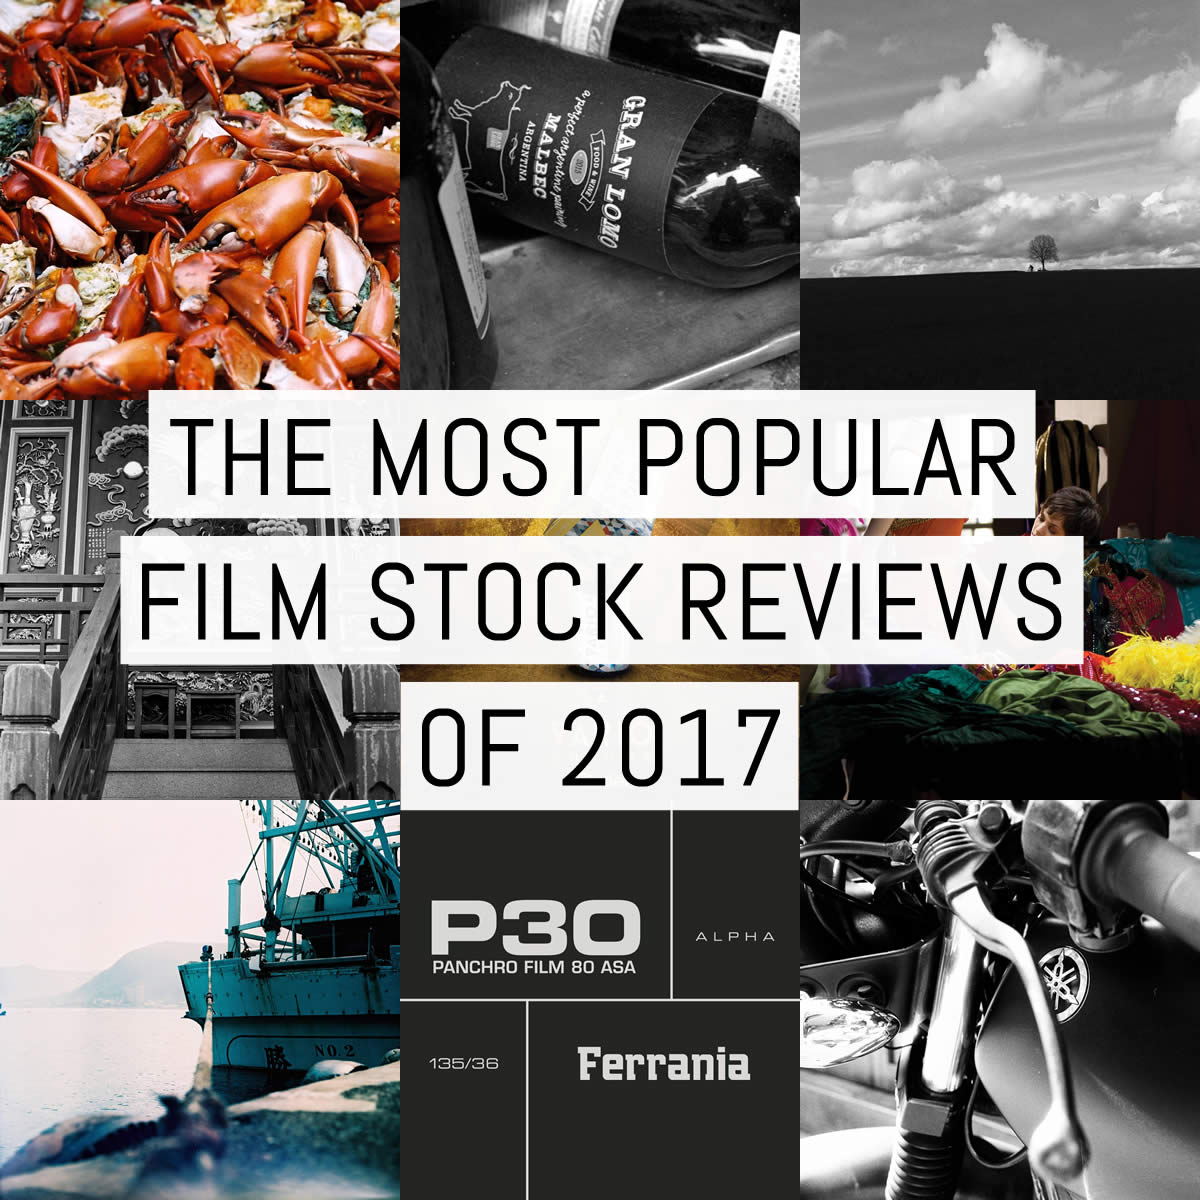 EMULSIVE's most popular film stock reviews of 2017